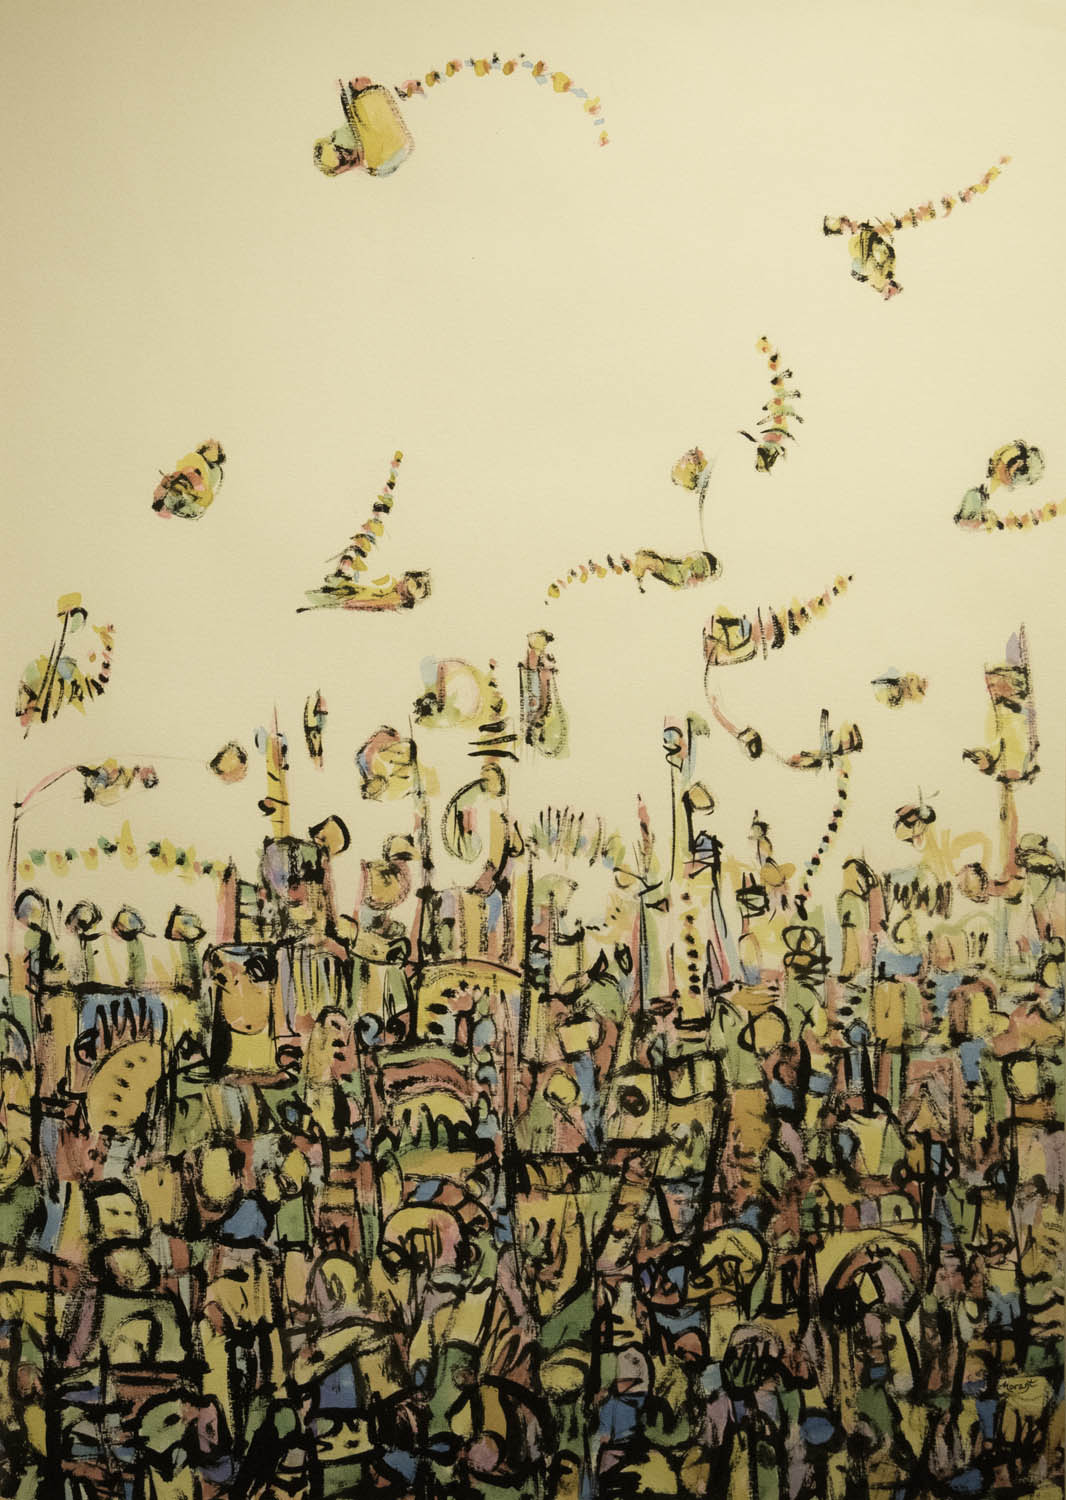 Urban Song Painting in Mixed Media on Paper by Keith Morant Exhibition at Windsor Gallery